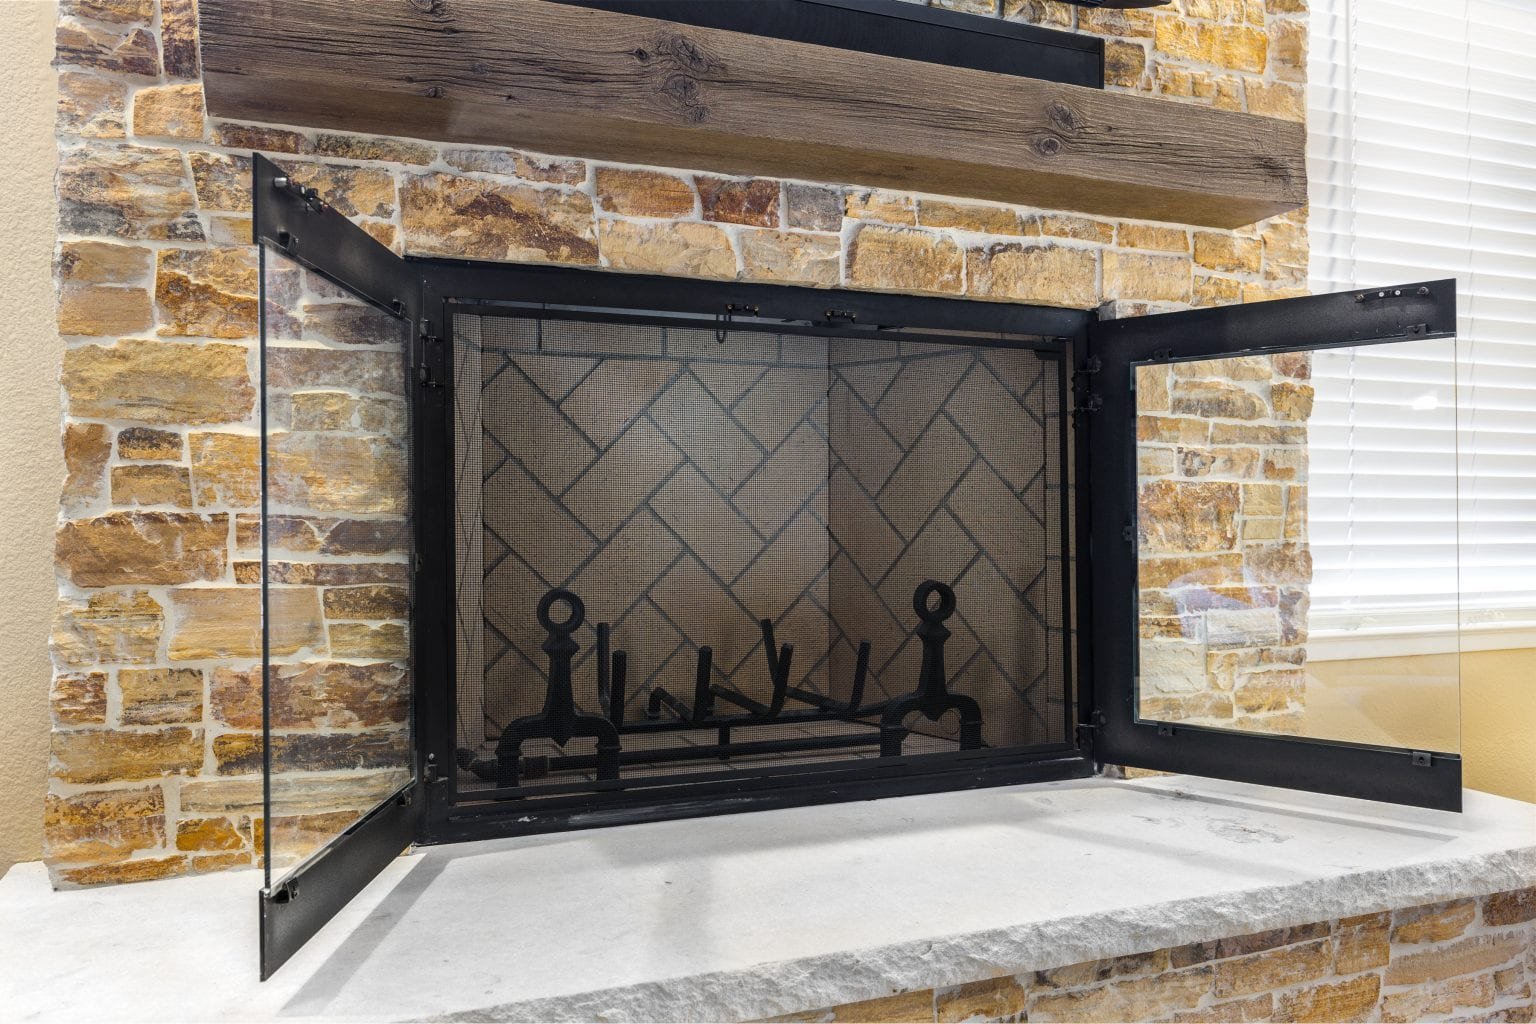 Stone fireplace with black mesh cover